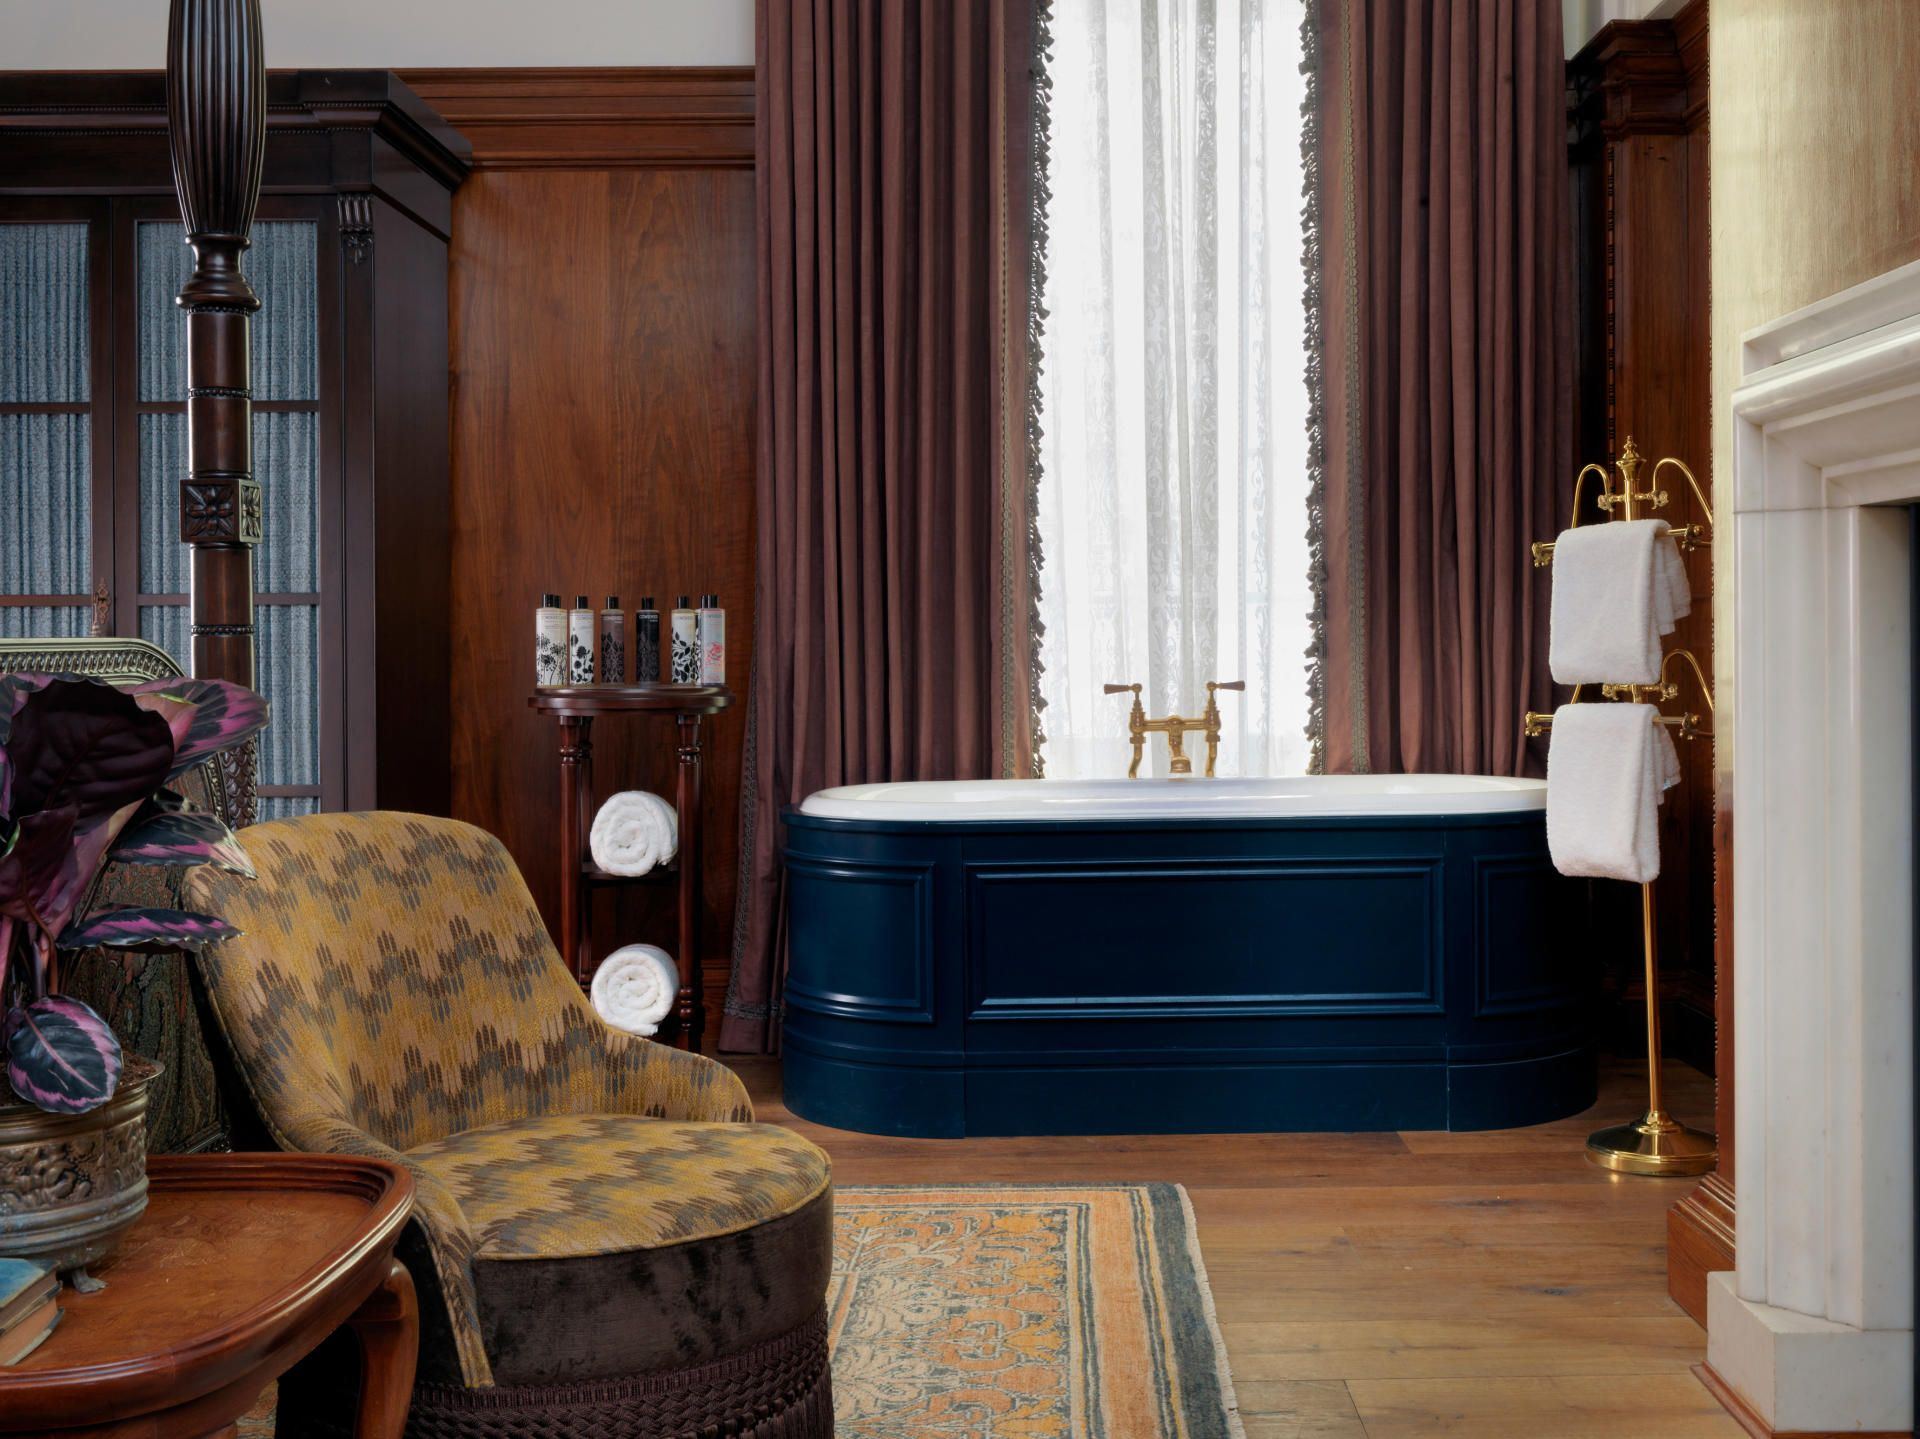 Wooden panelled bathtub painted dark blue in one of the